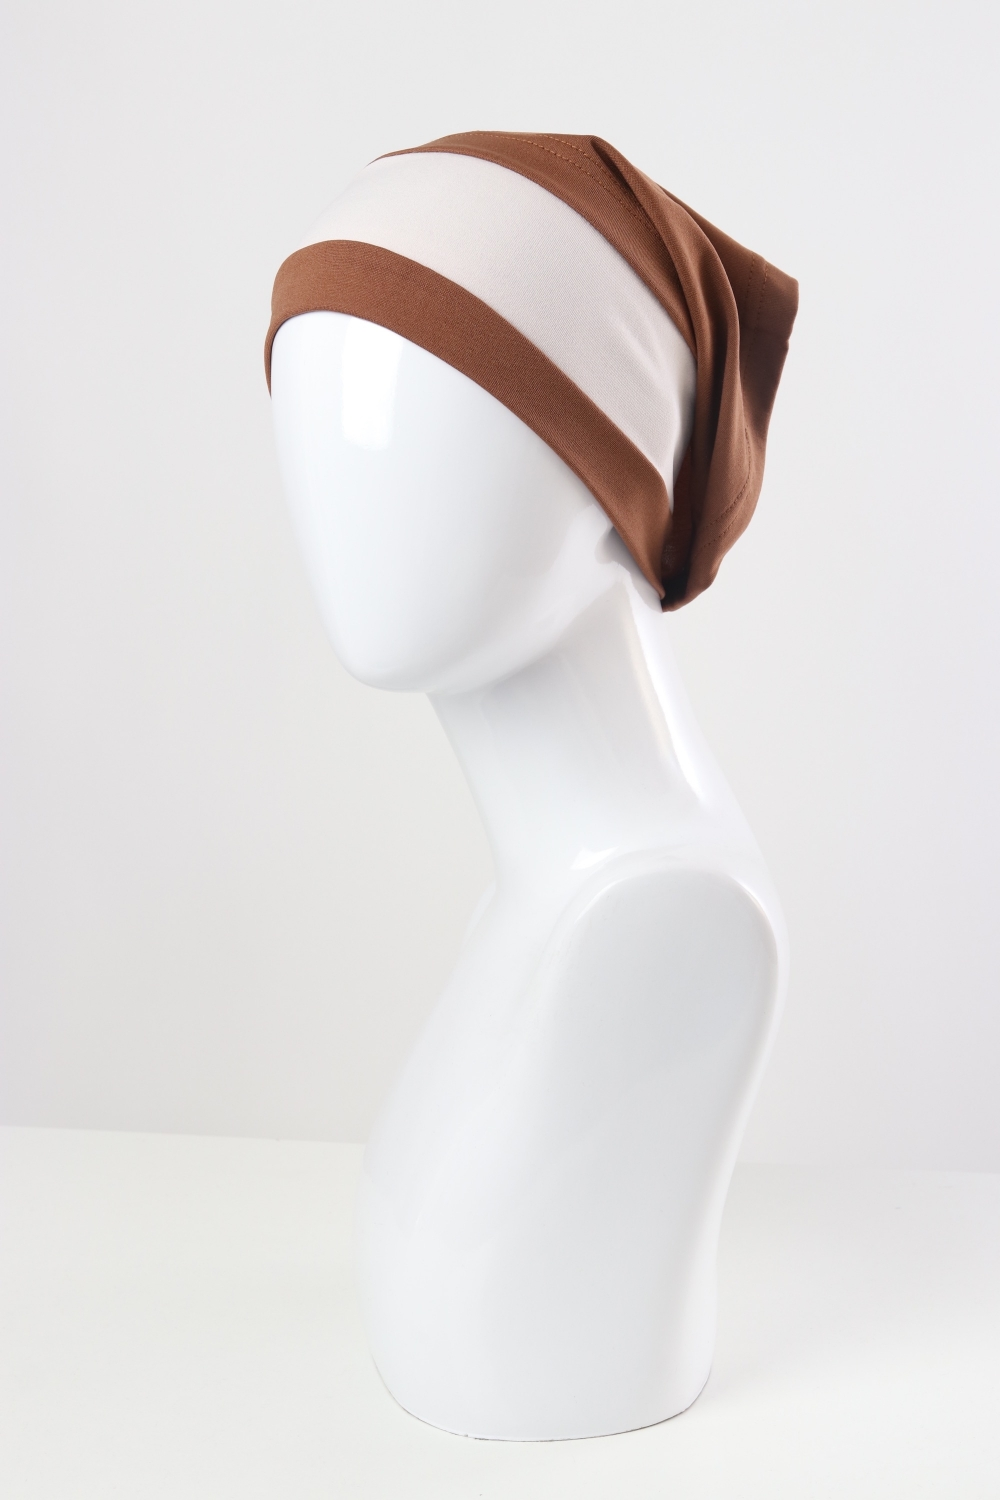 Cap for hijabi with two colors